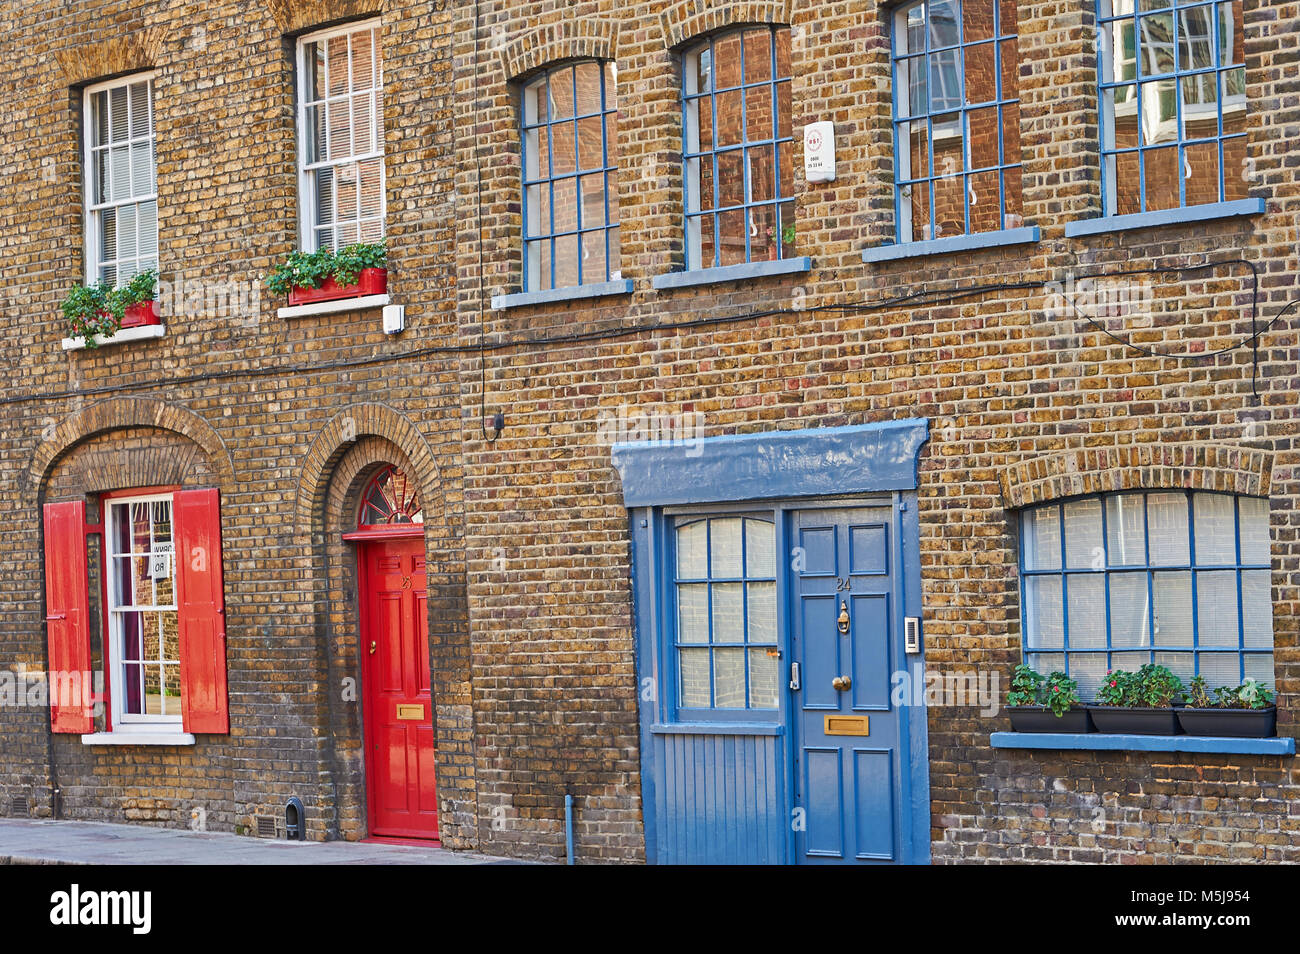 A Pretty Row Of Brick Terraced House With Red And Blue Doors Red